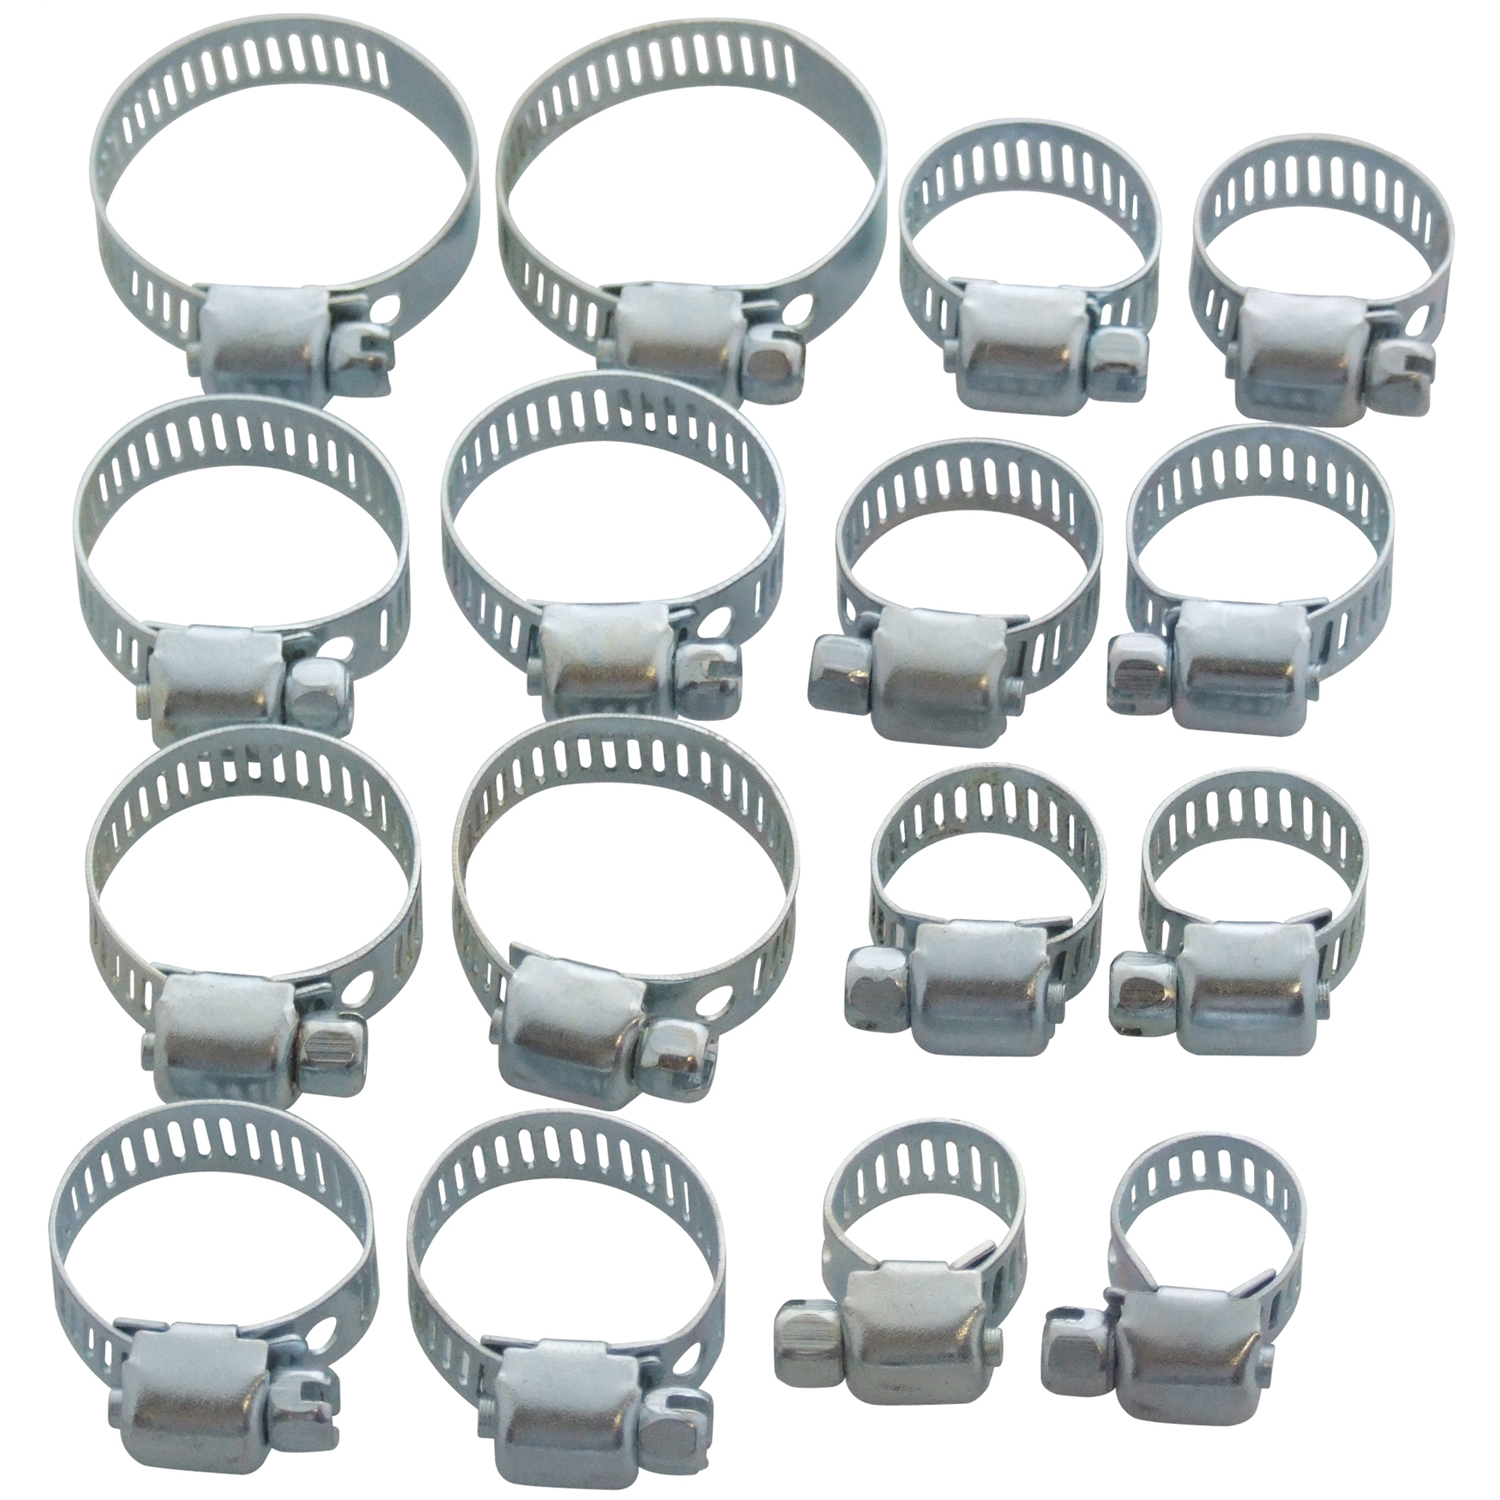 Jubilee clips hose clamps pipe clamp pc set mm